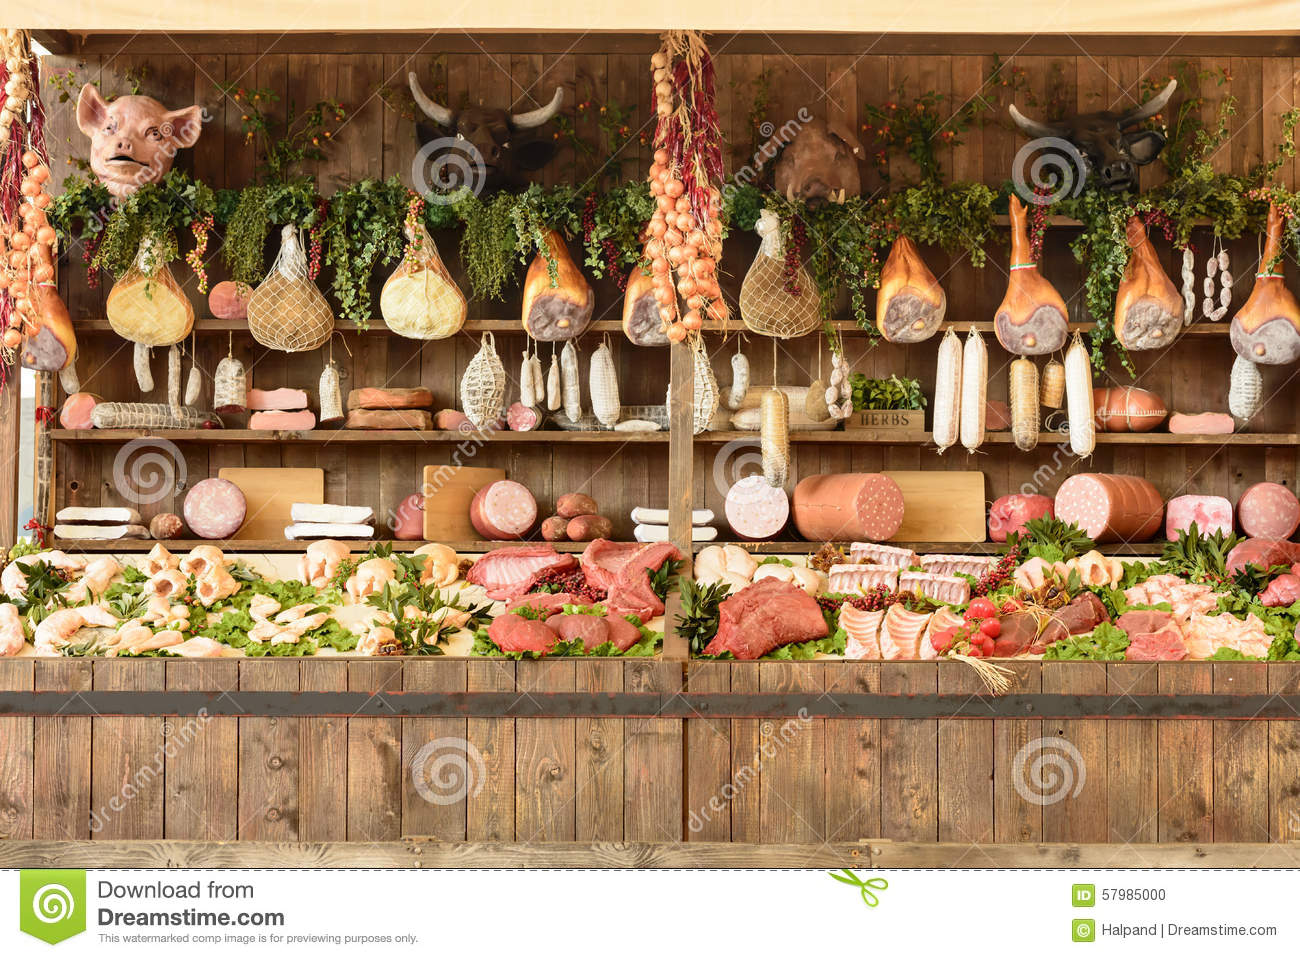 Food Exhibition Stall : Exhibition of mockups butchery food expo milan